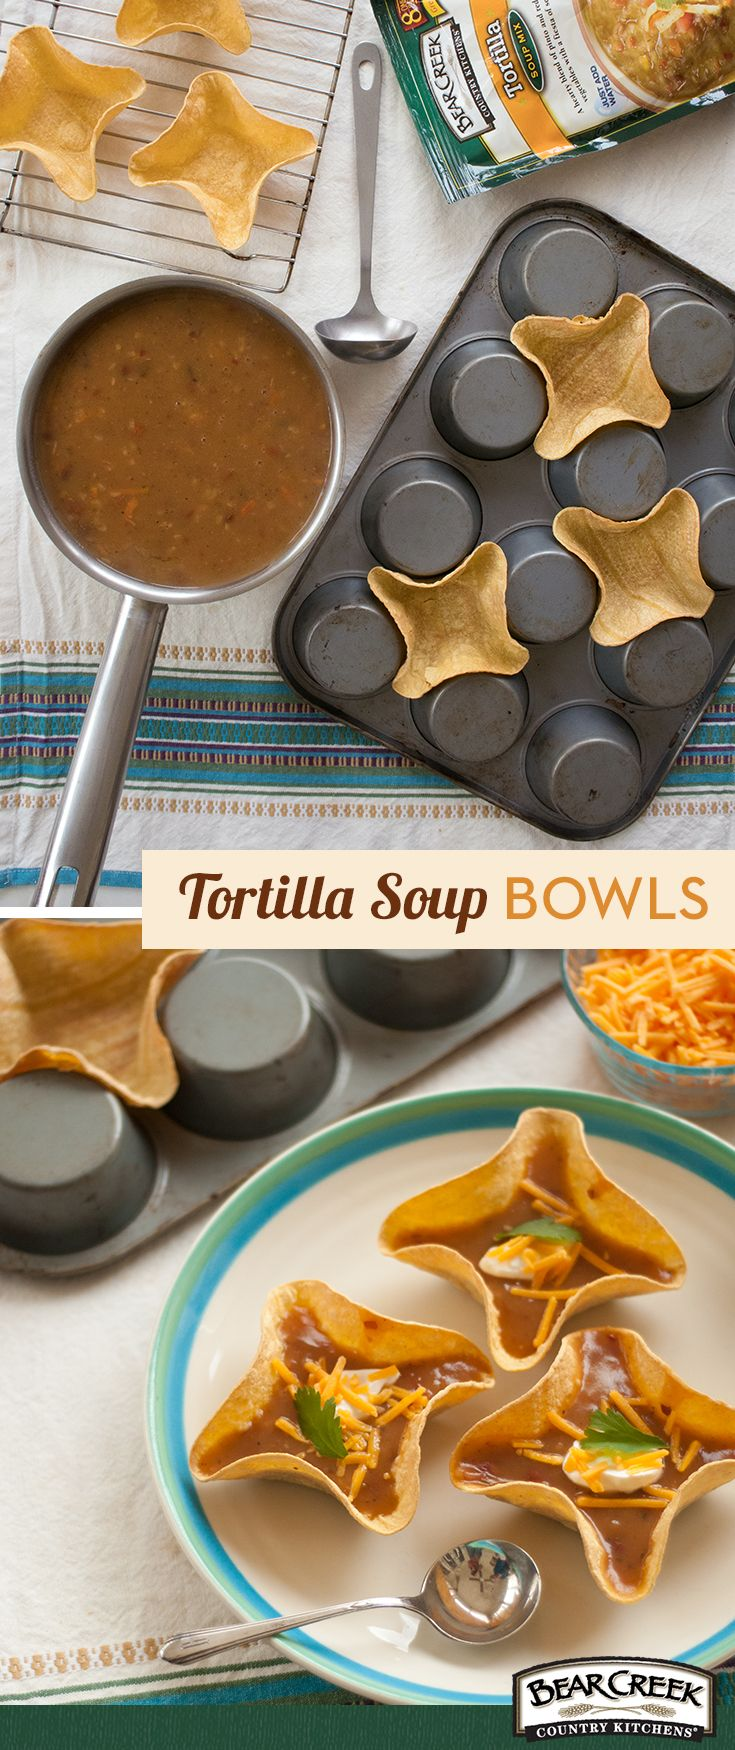 Get creative next time you are serving tortilla soup! This